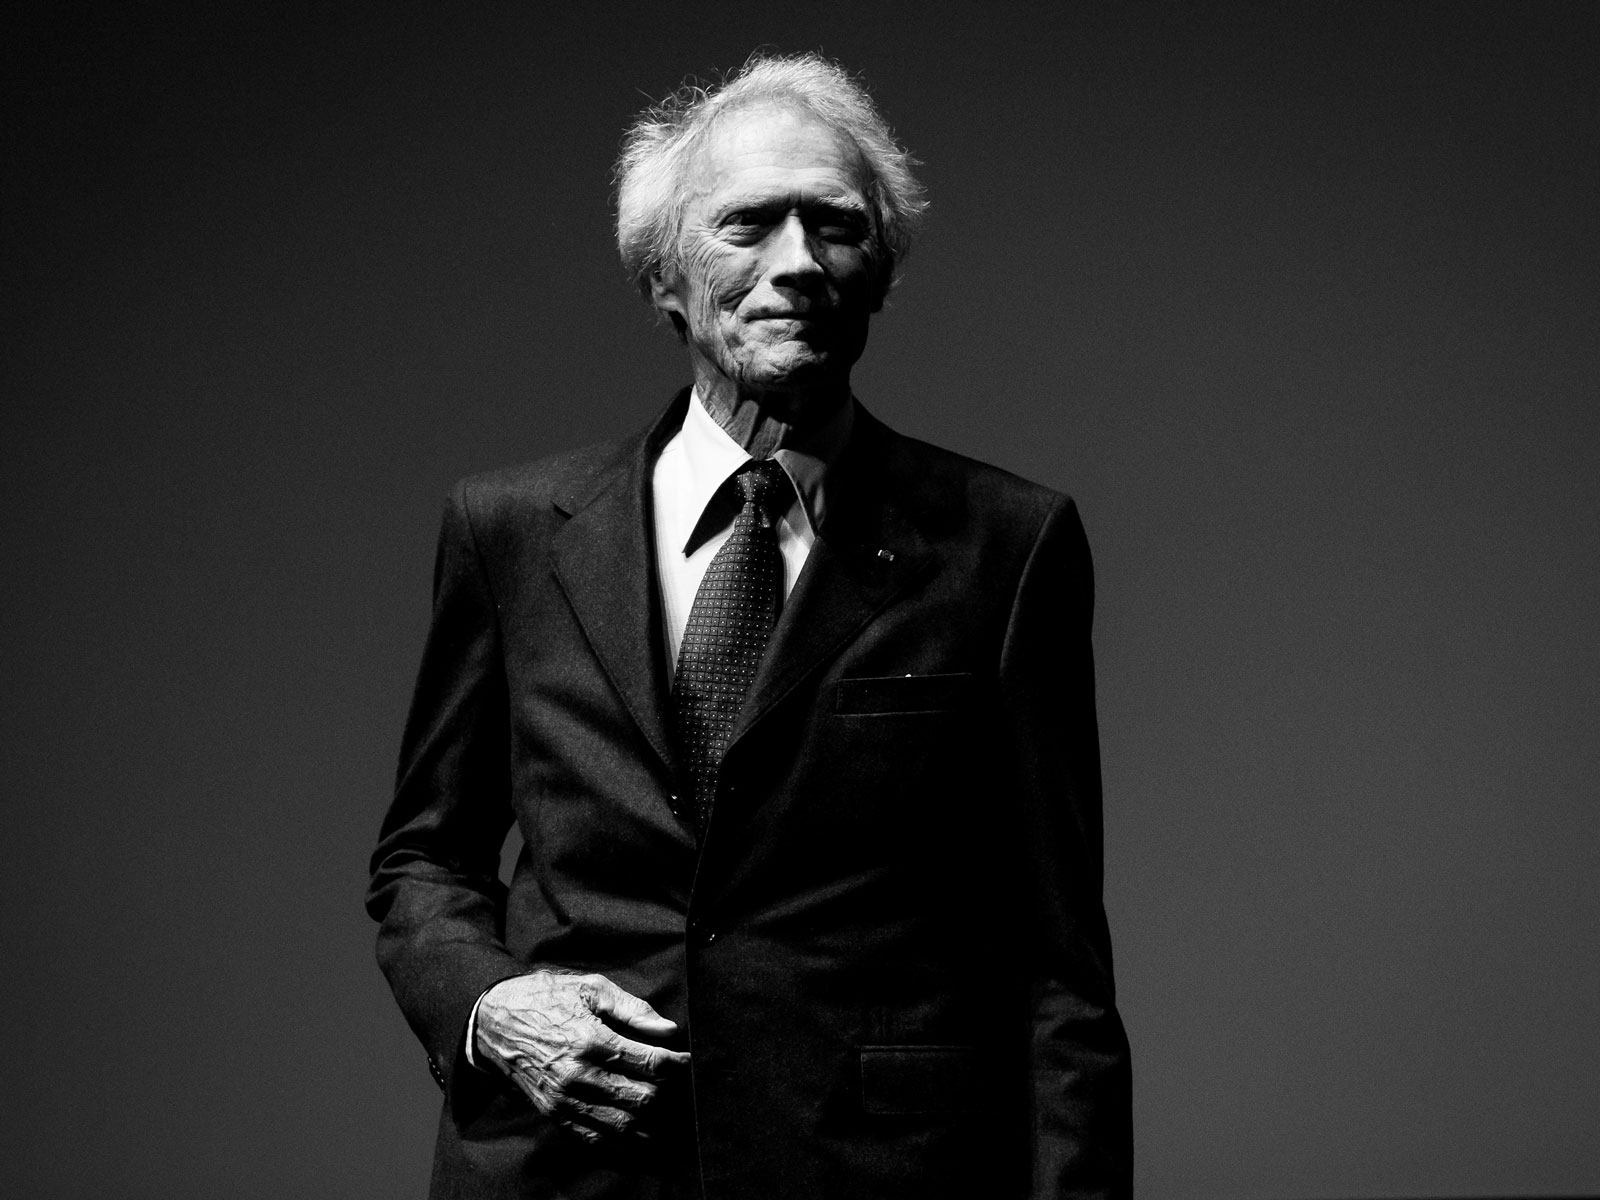 Clint Eastwood Is Getting a Three-Beer Tribute